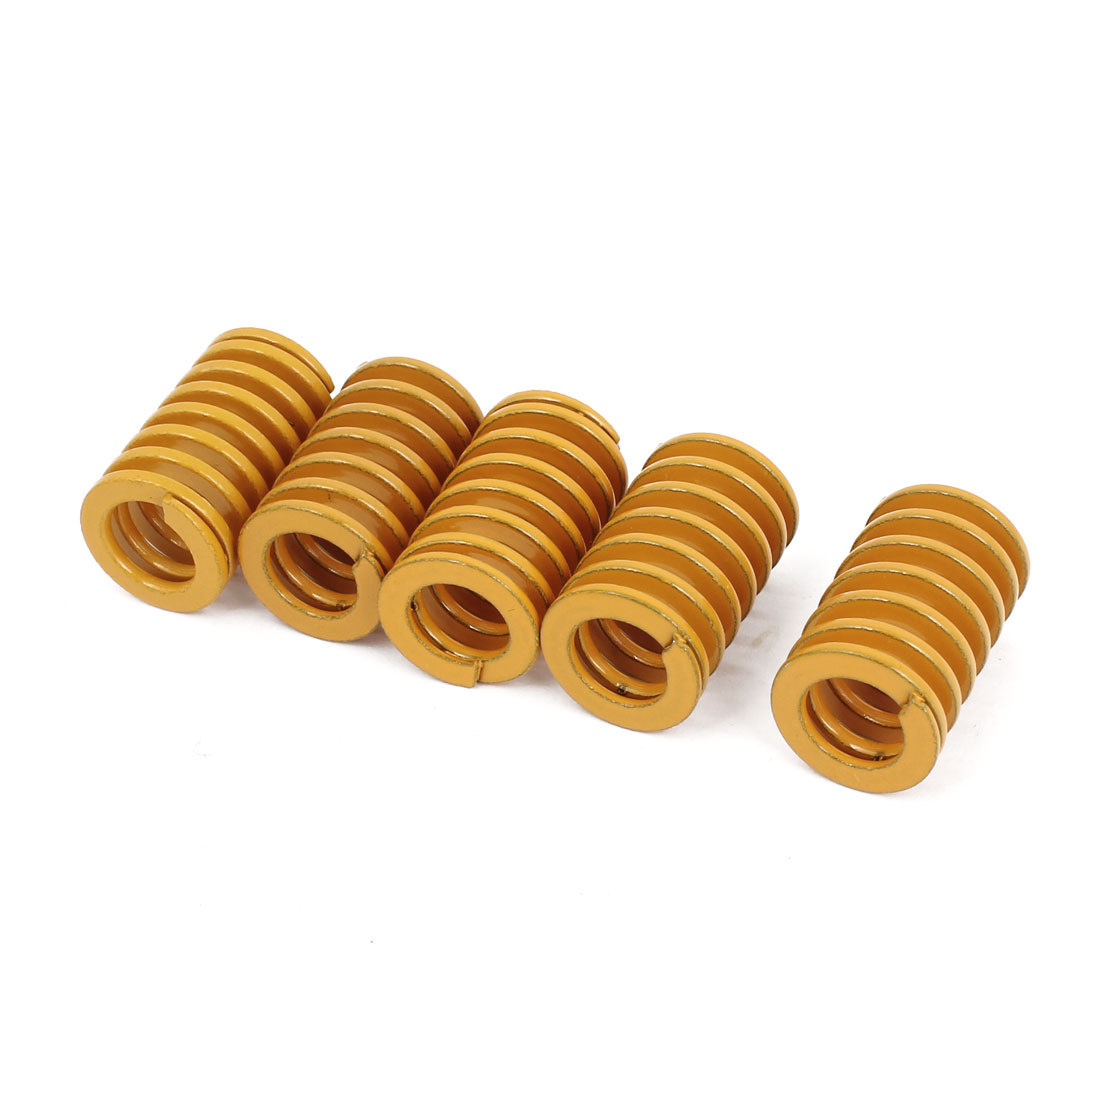 9mm x 16mm x 25mm Rectangular Section Mold Mould Die Spring Yellow 5 pcs